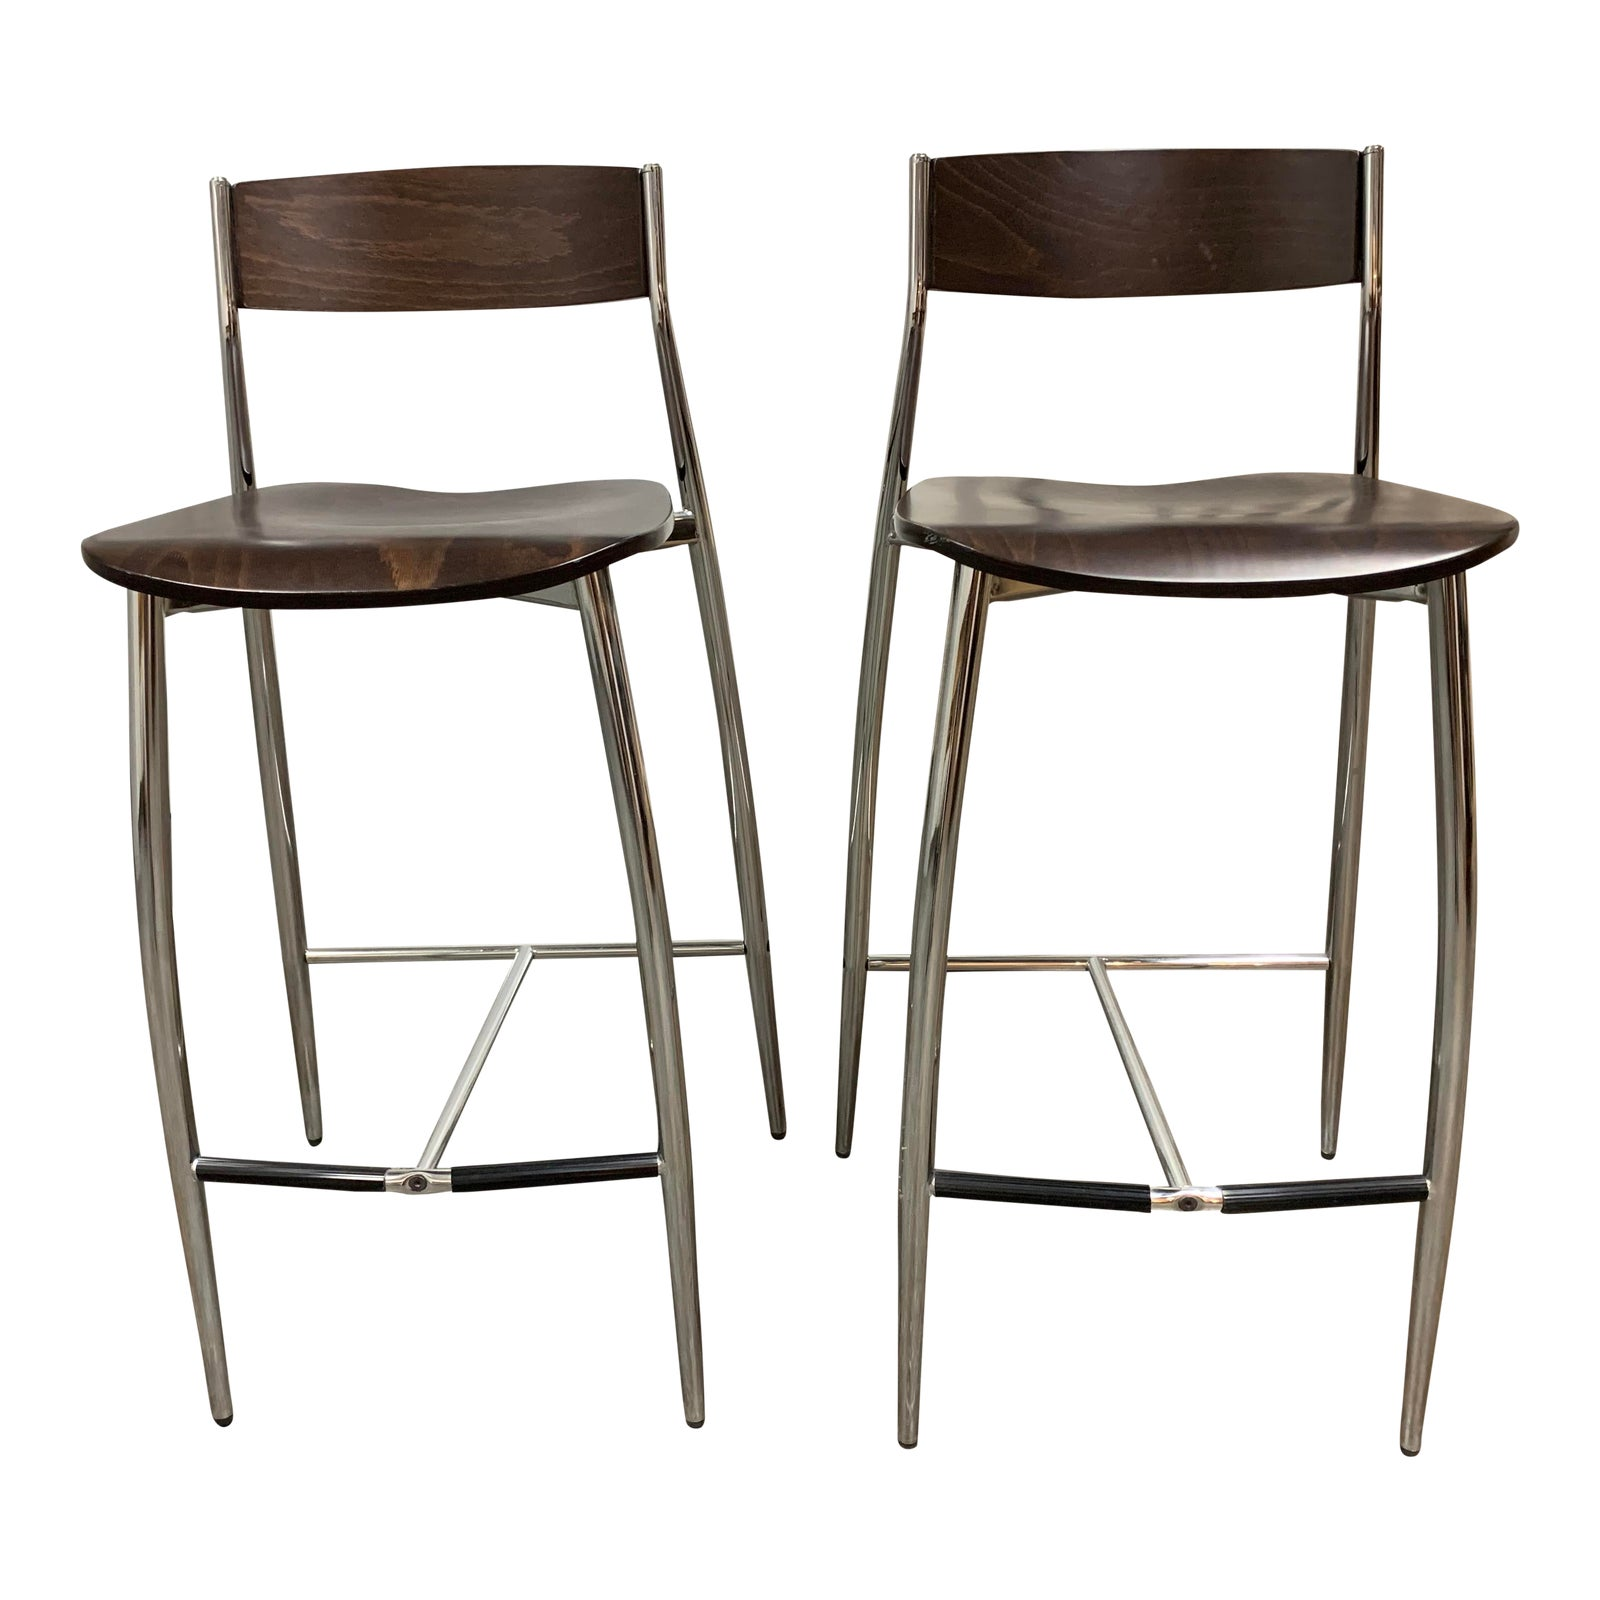 Outstanding Design Withing Reach Altek Baba Wood Chrome Barstools A Pair Original Price 1 700 Theyellowbook Wood Chair Design Ideas Theyellowbookinfo